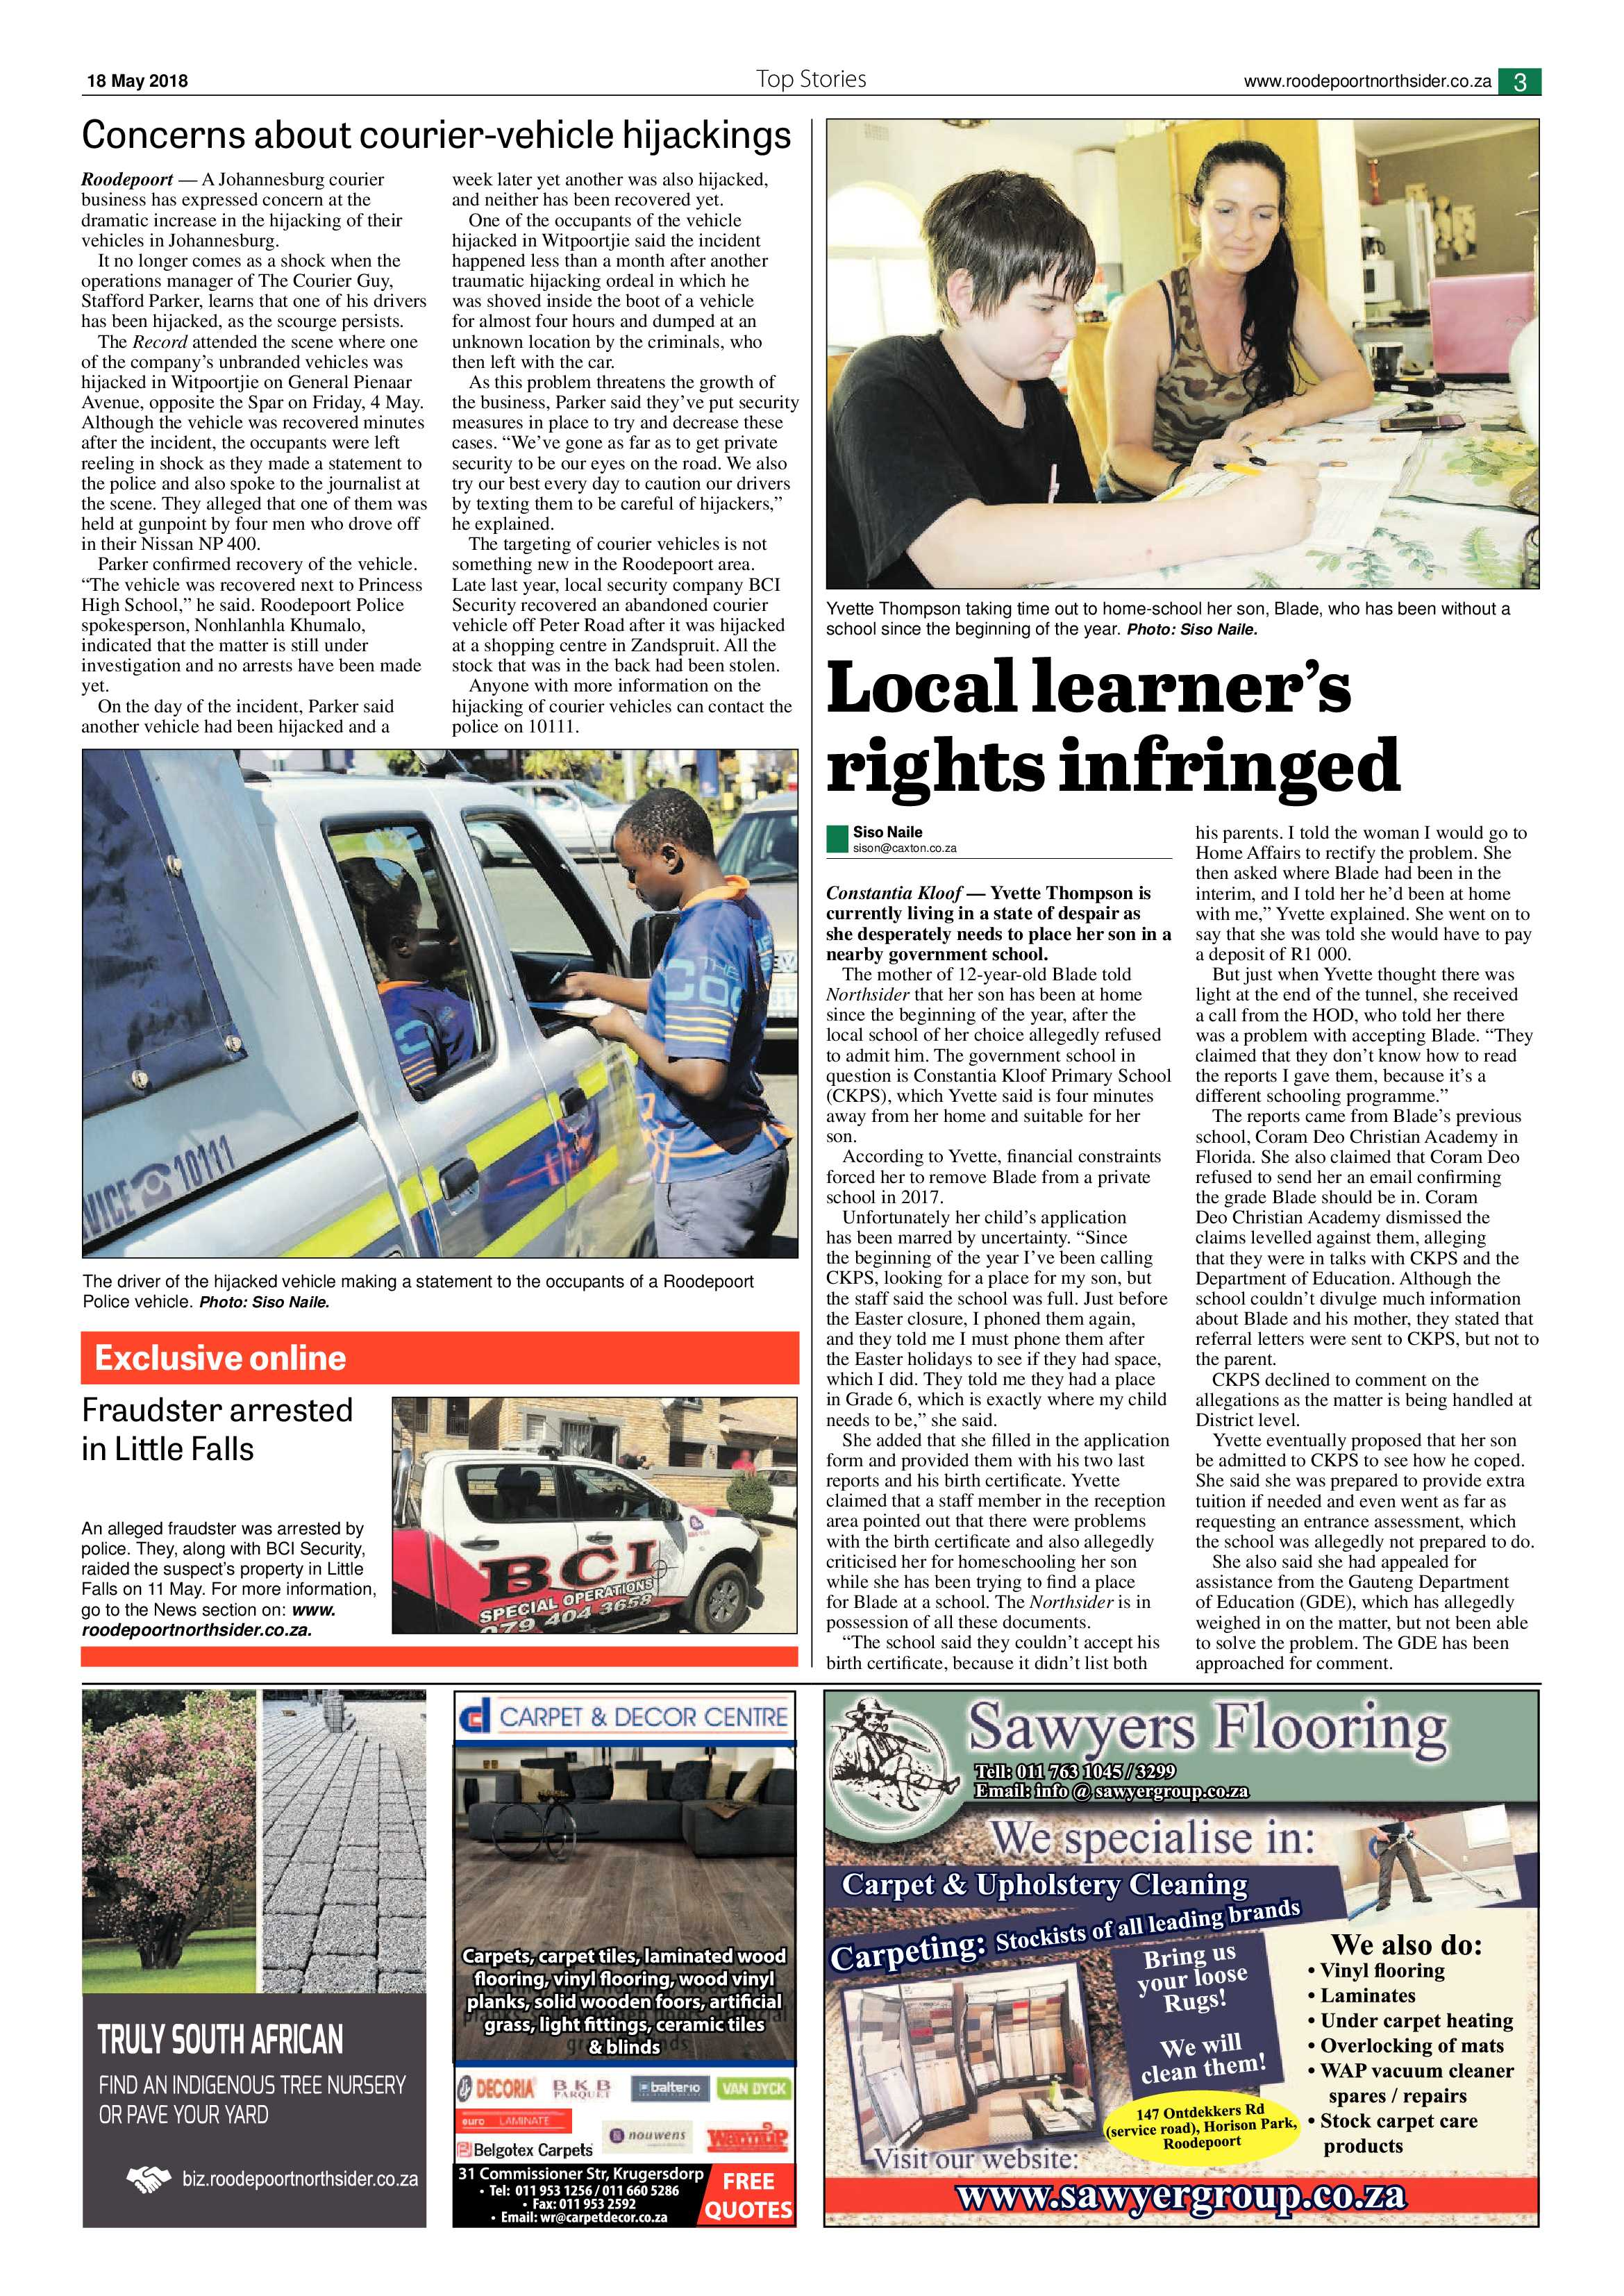 Roodepoort northsider 18 may 2018 roodepoort northsider roodepoort northsider 18 may 2018 epapers page 3 reheart Image collections